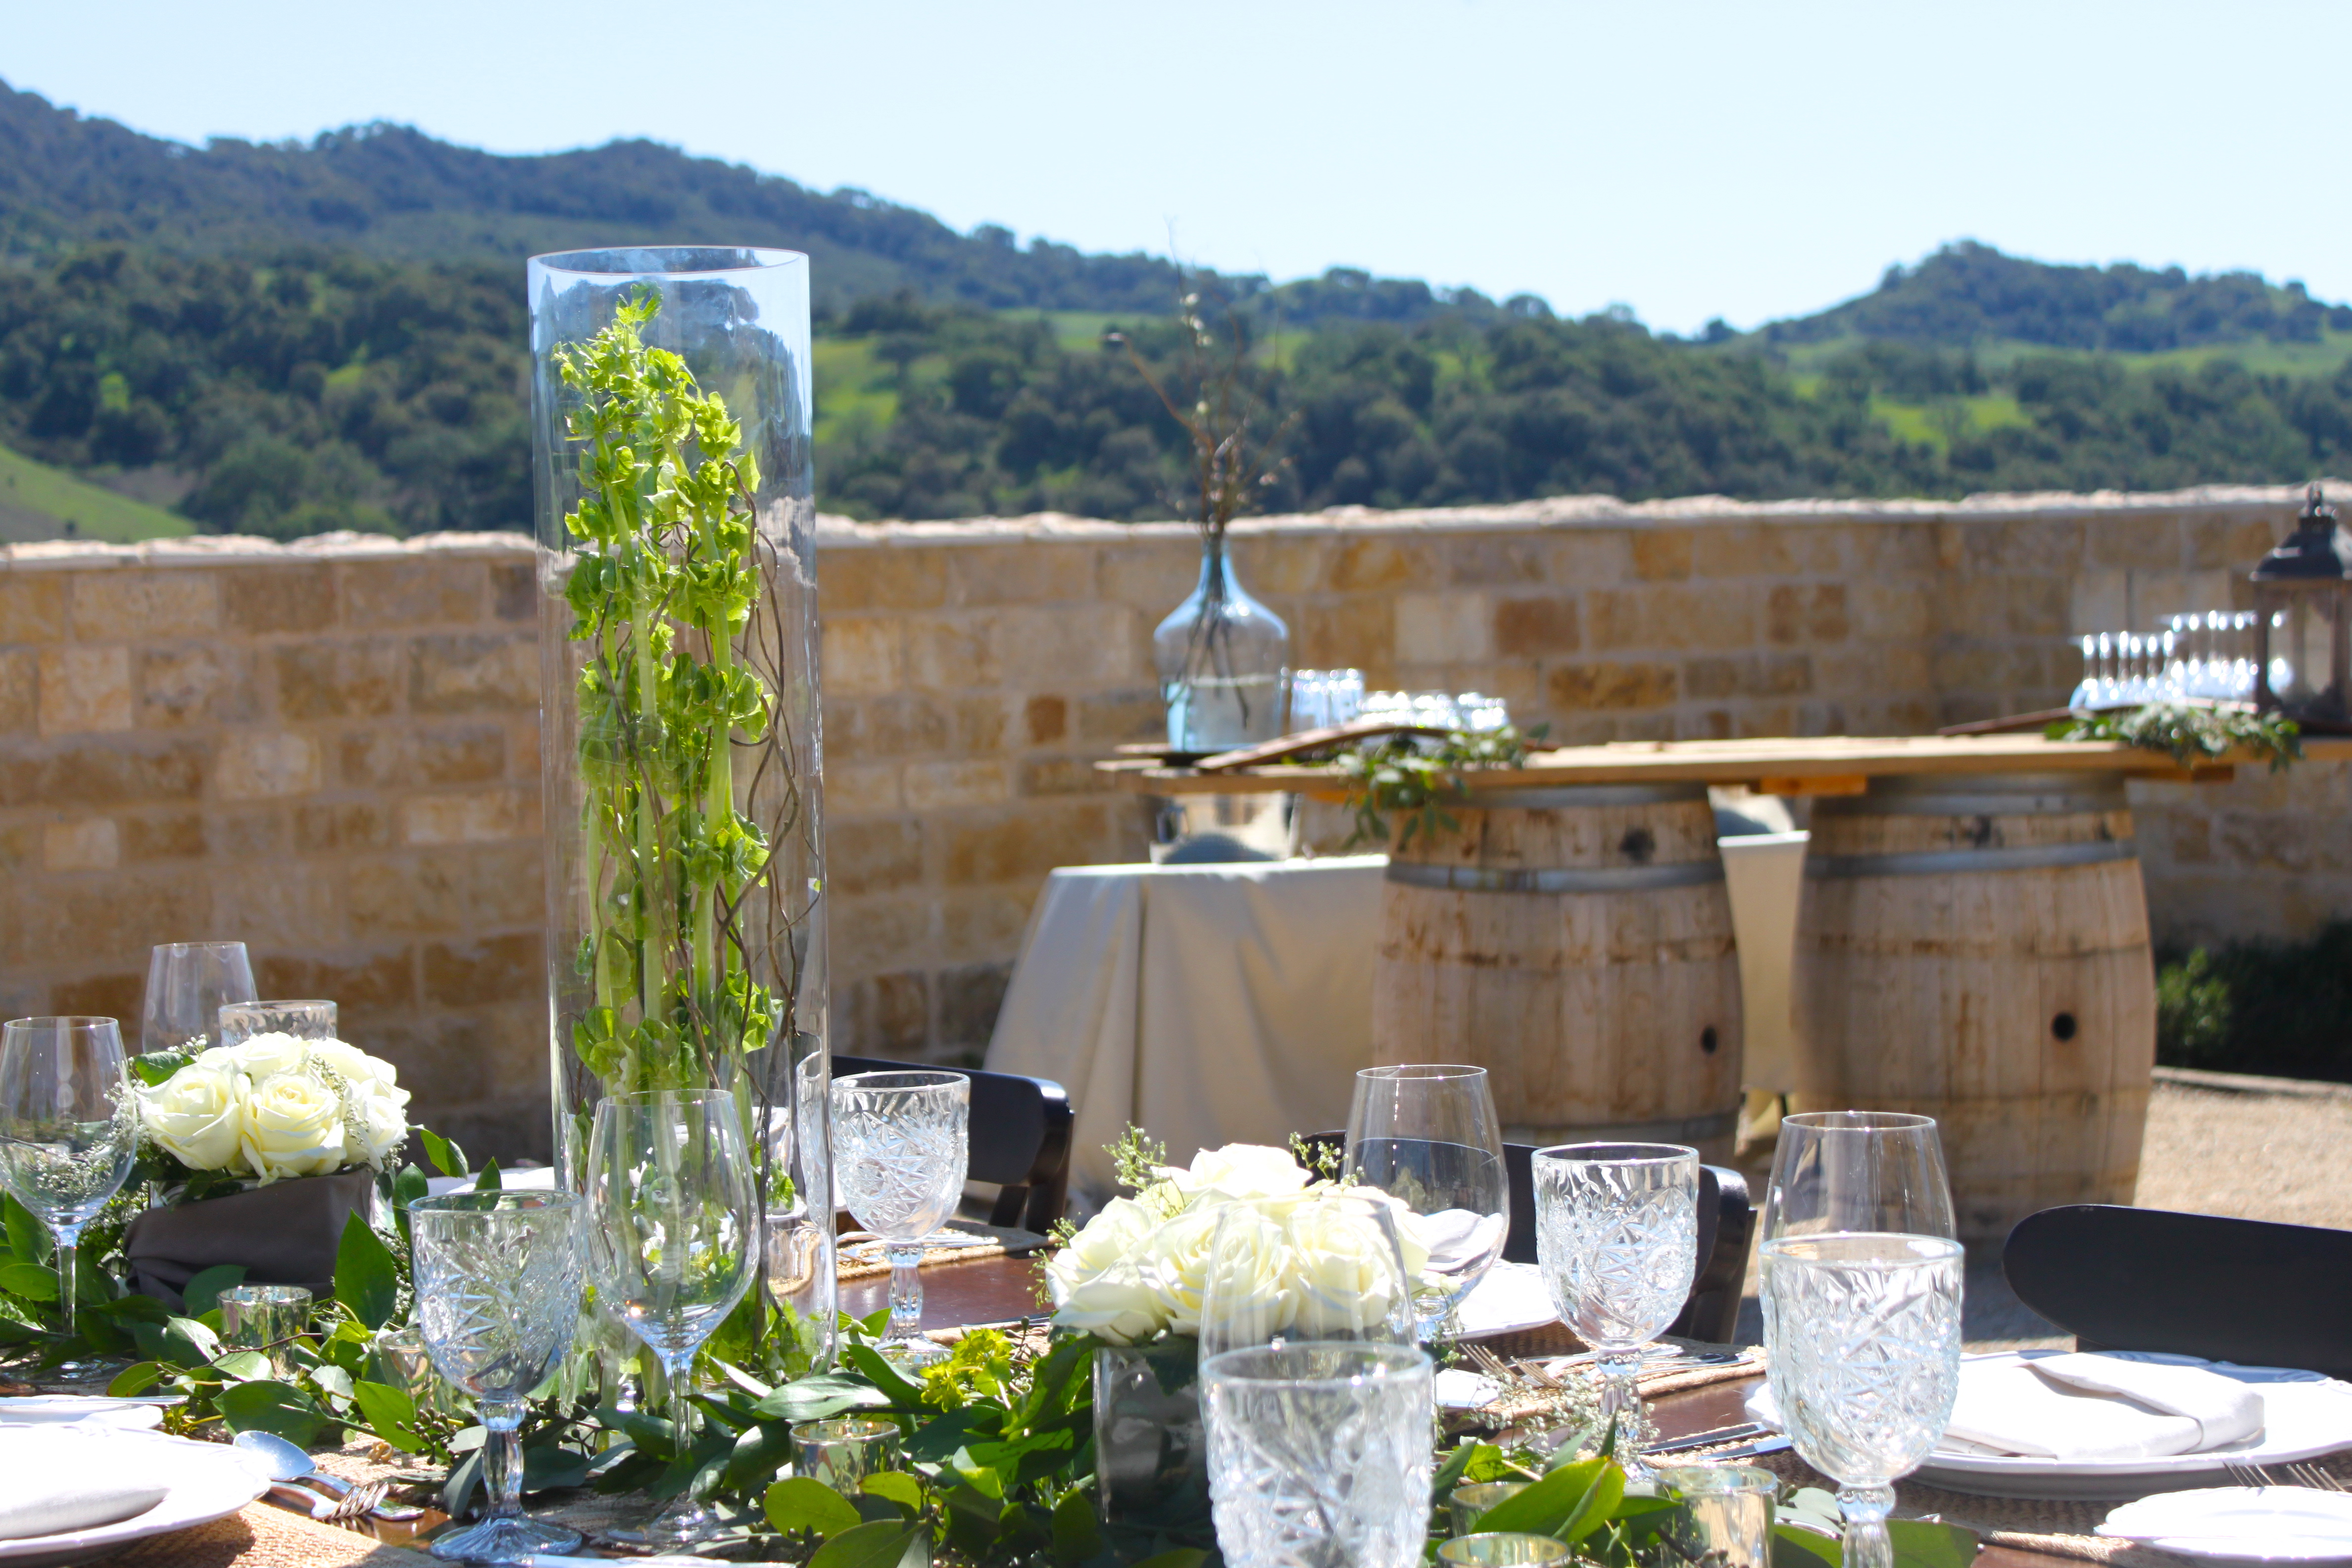 Santa Ynez Sunset Dinner Party Field To Table Catering - Field to table catering